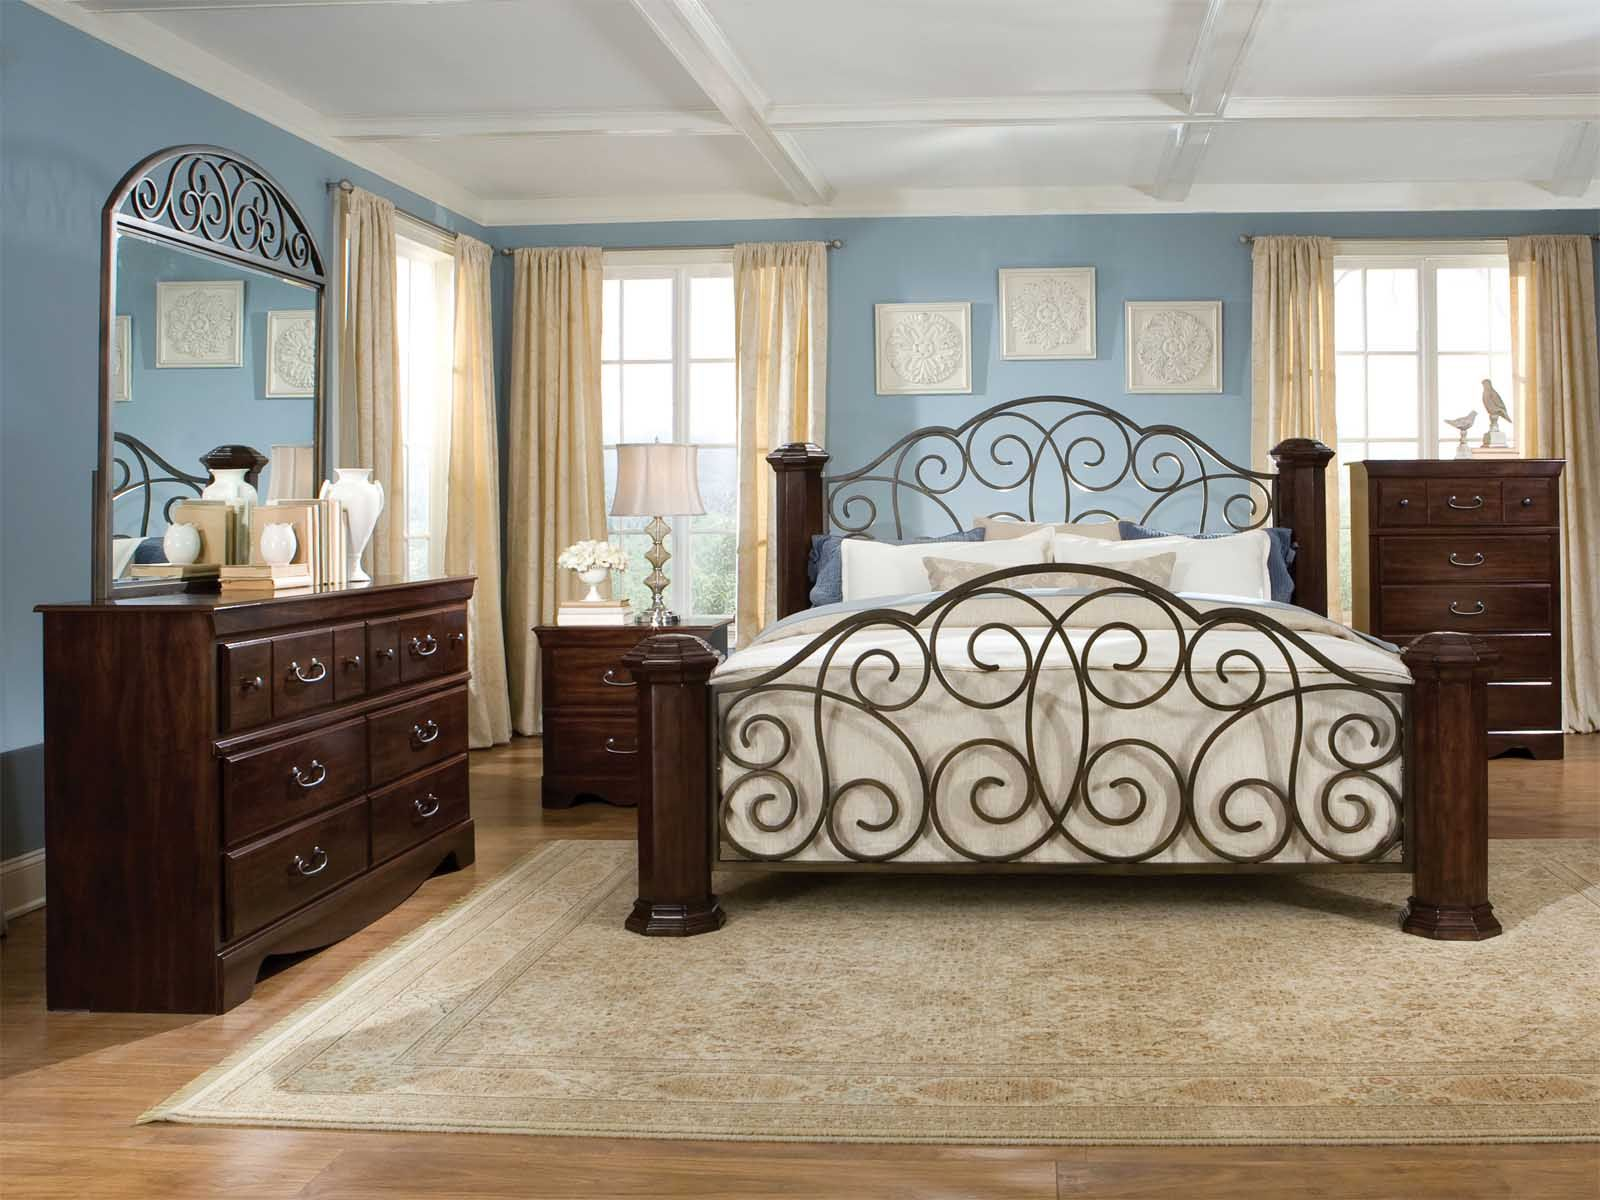 Bedroom Design Amazing Bedroom Awesome Bed 2017 King Size Bed Foam